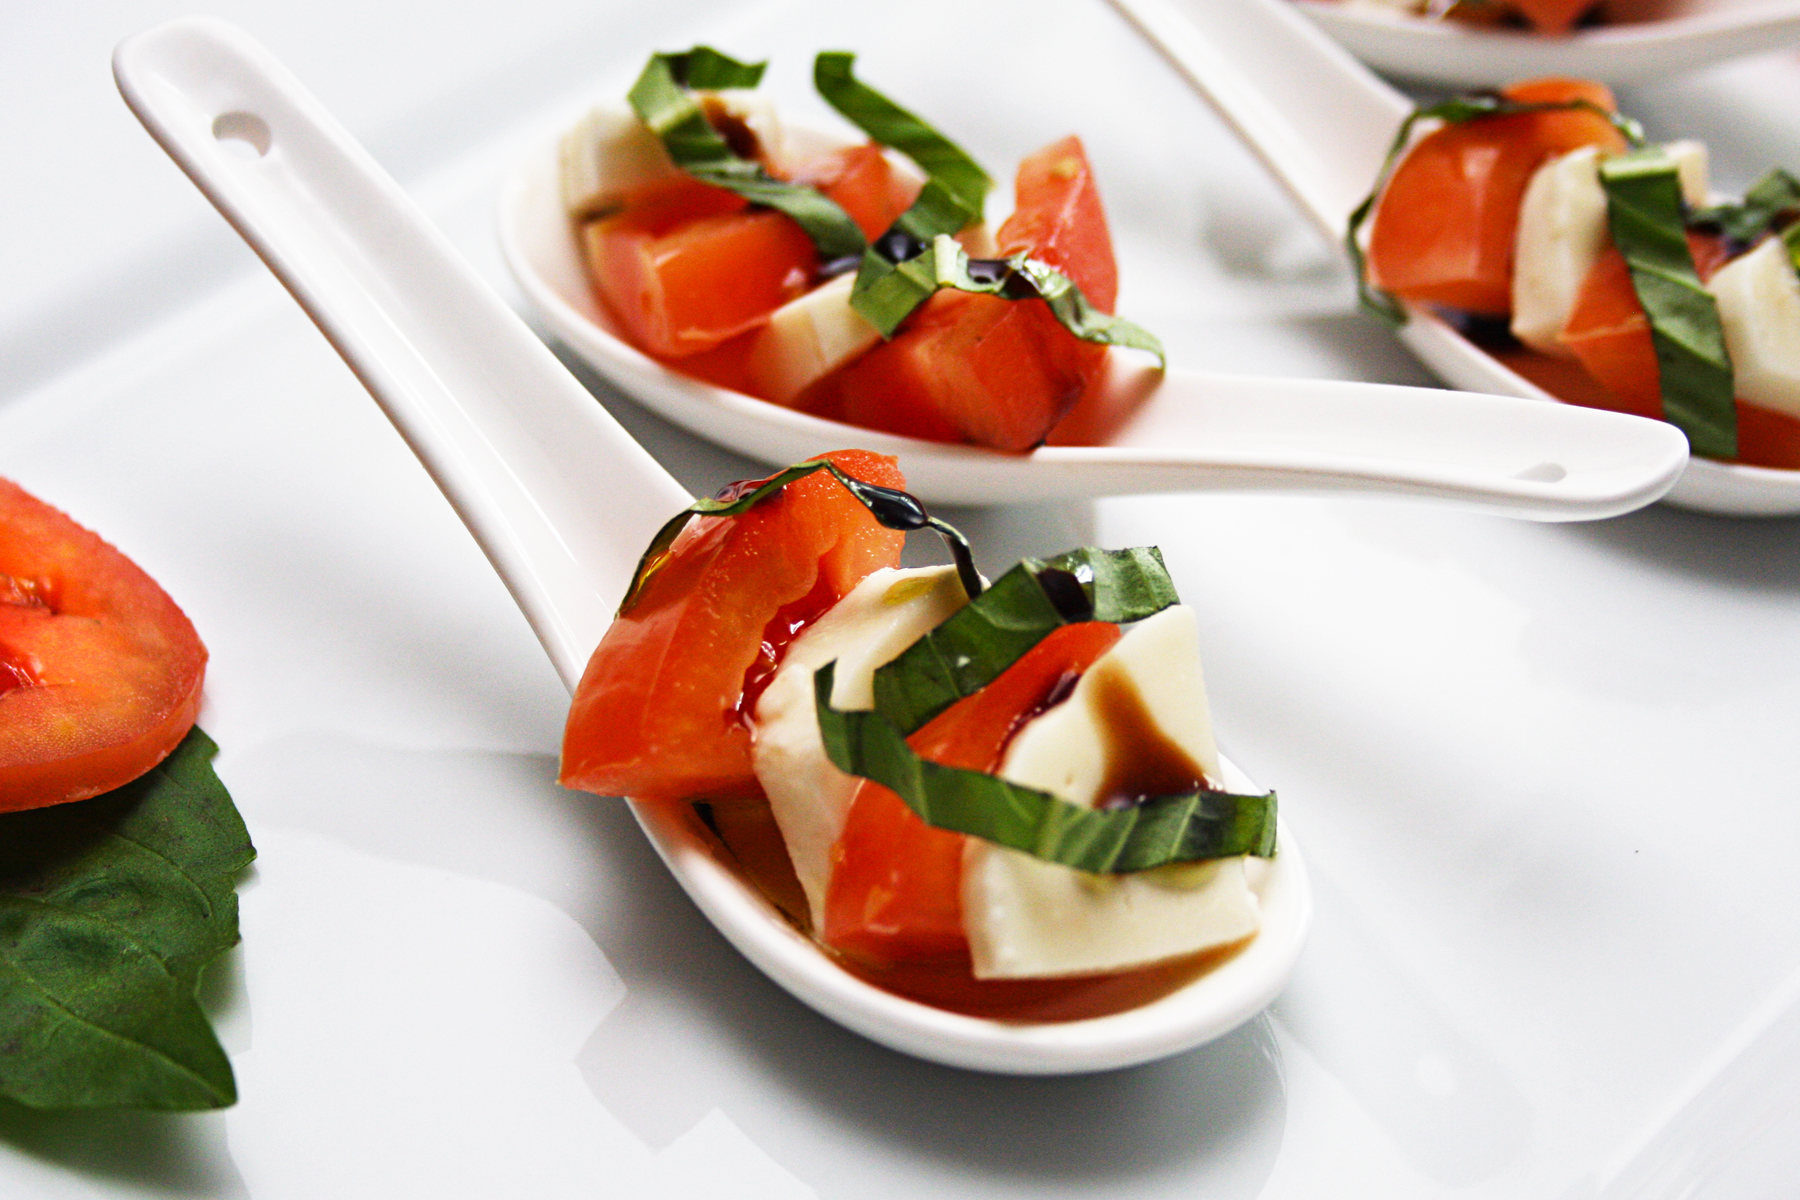 Caprese Salad Amuse Bouche Recipe | Exploring Food & Drink in D.C.